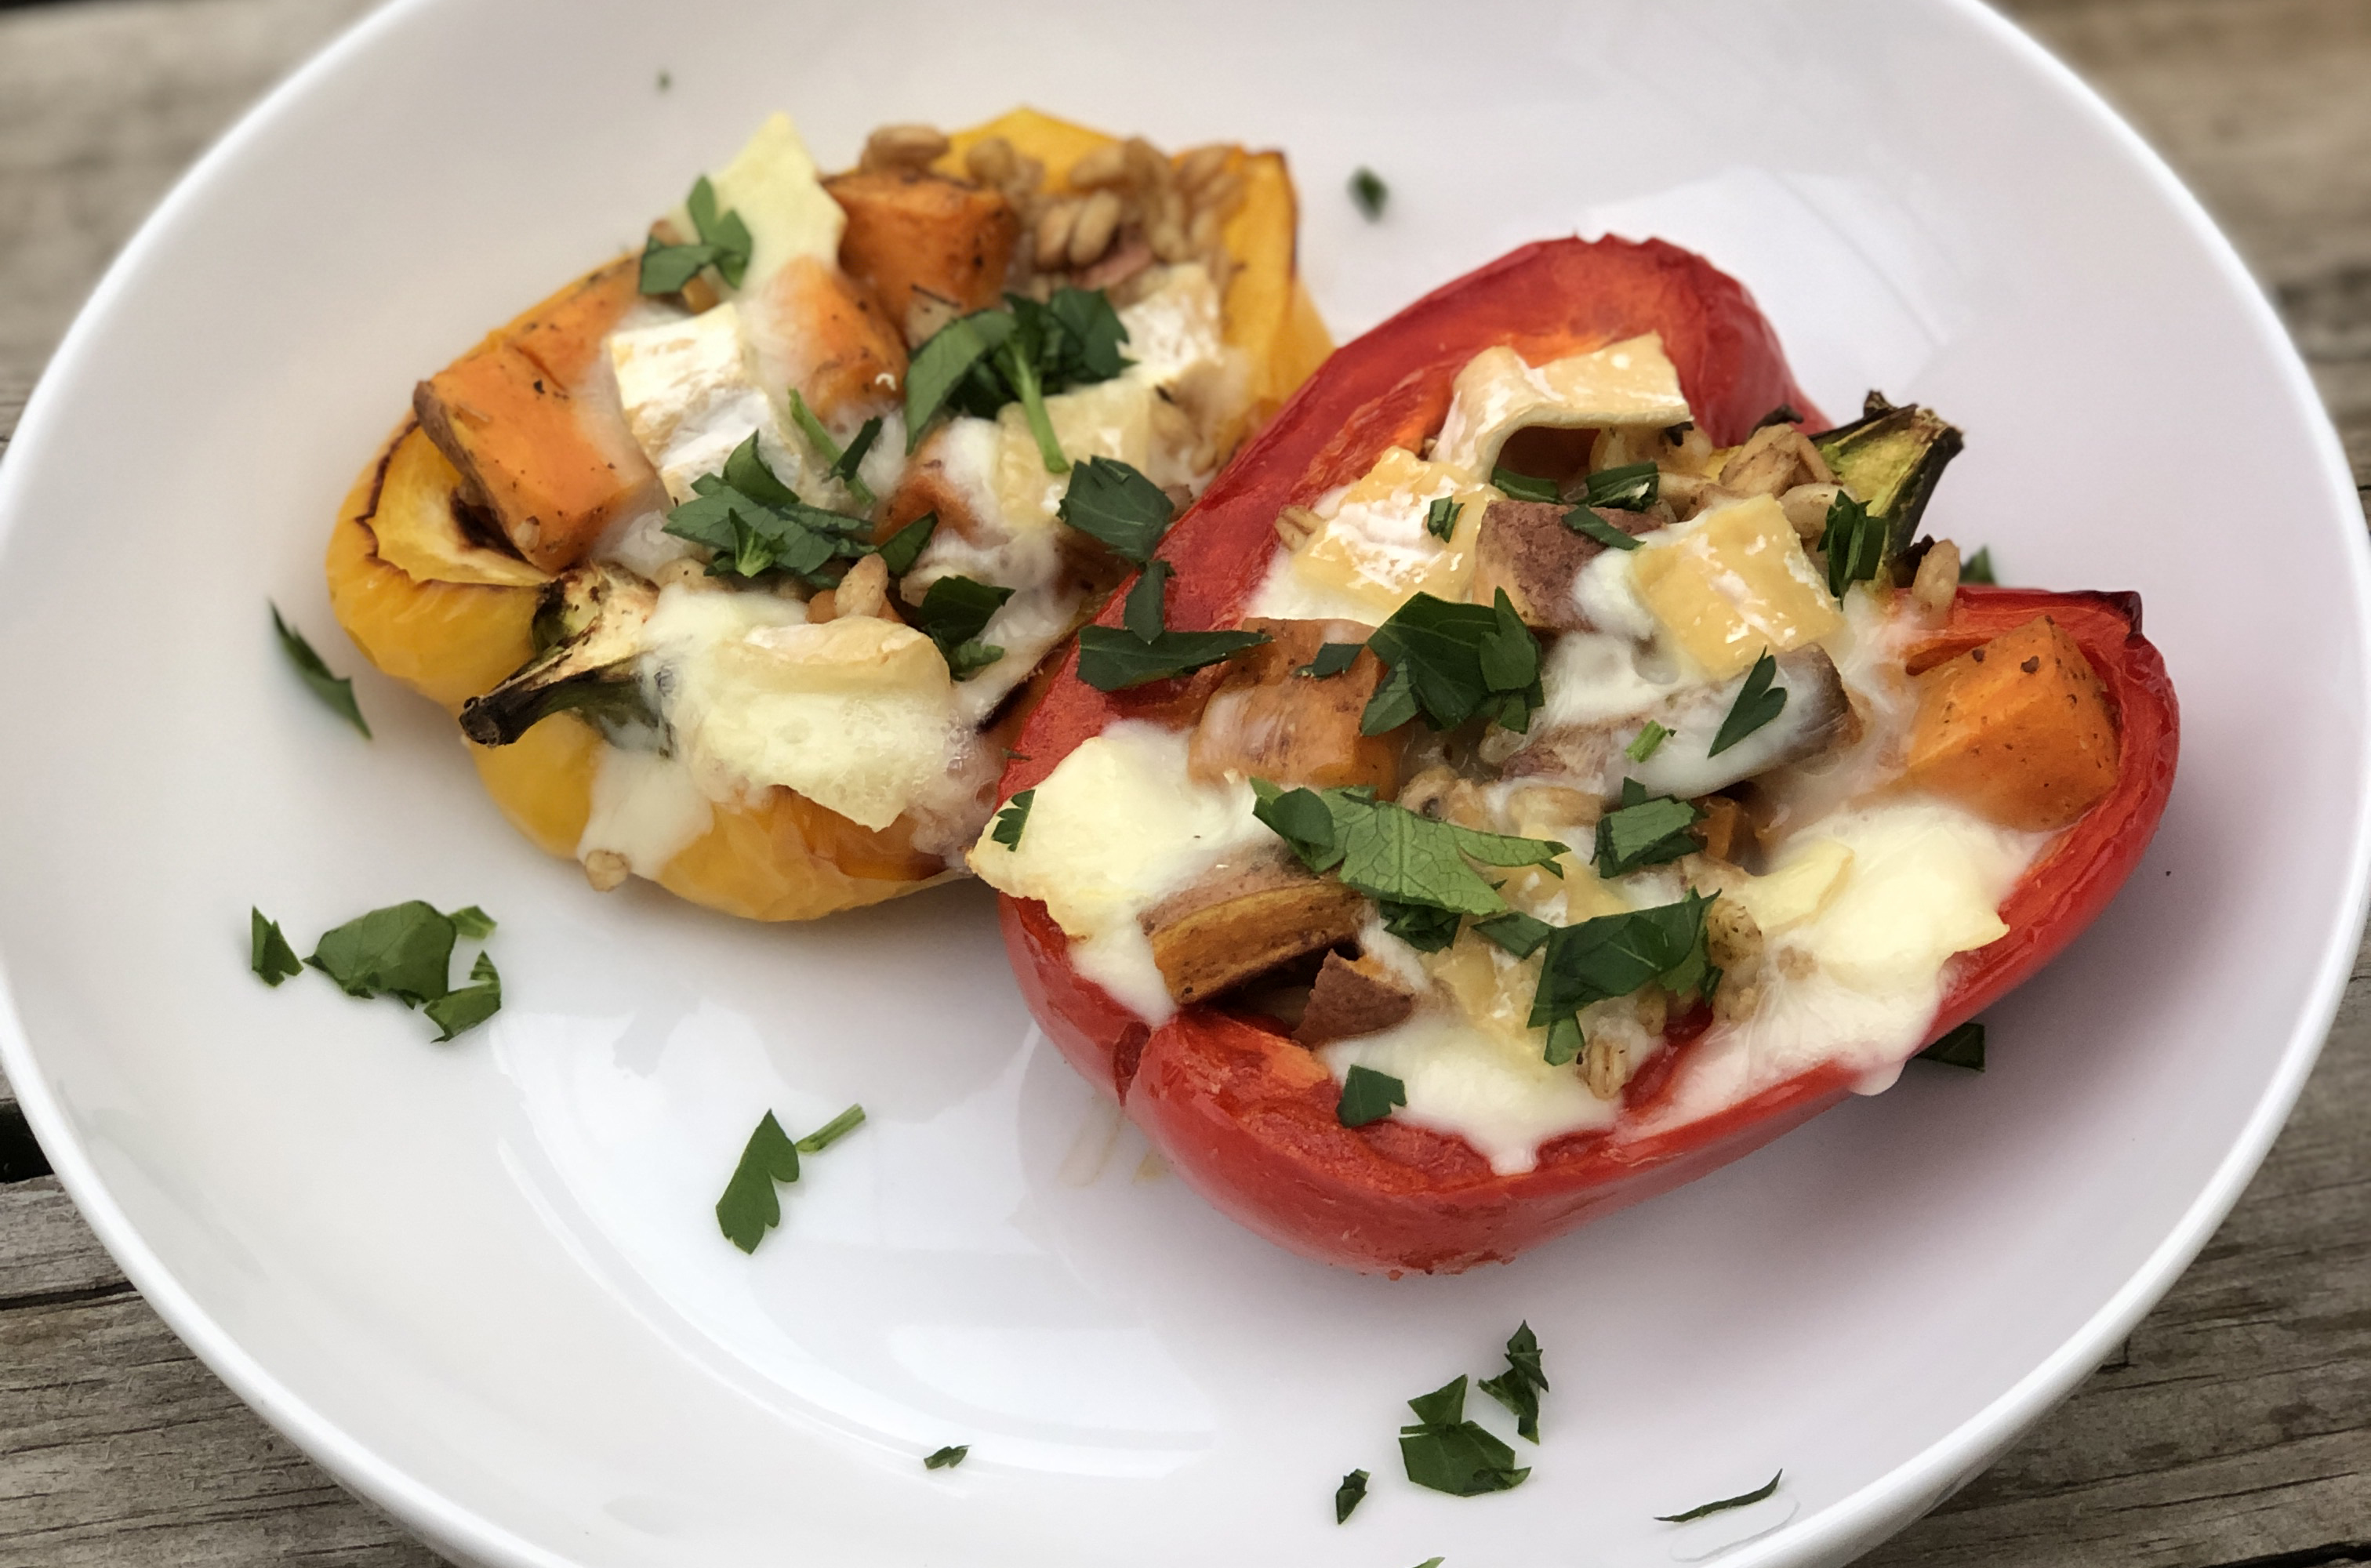 Try this vegetarian stuffed peppers recipe with sweet potatoes, farro and blended milk cheese by Green Dirt Farm.